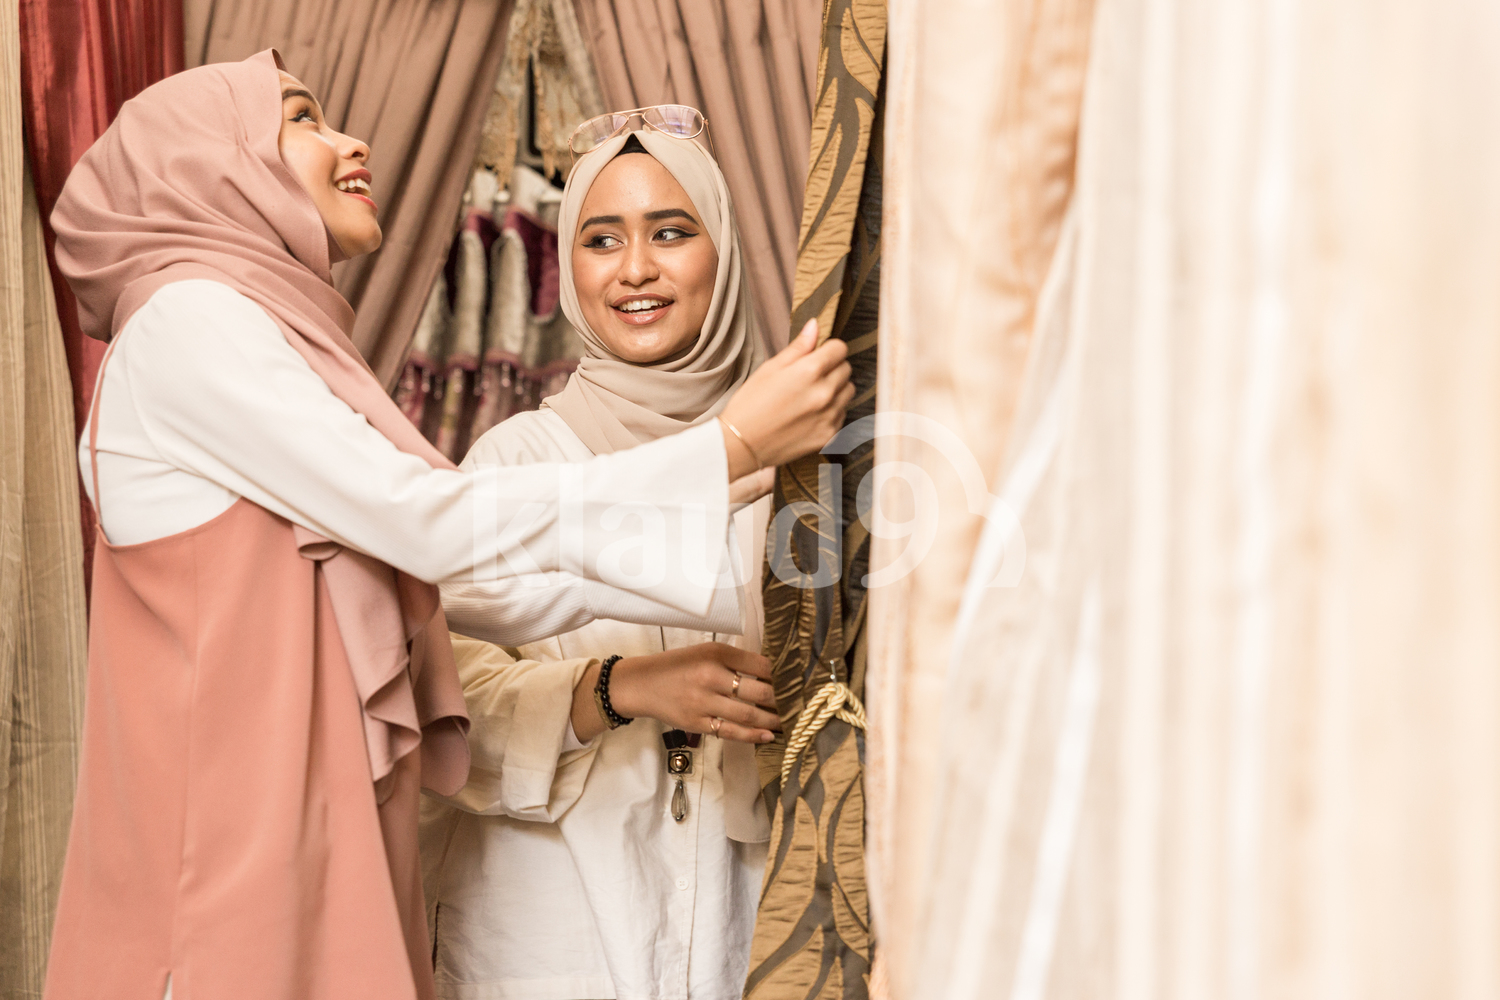 Two women in headscarves shopping for curtains